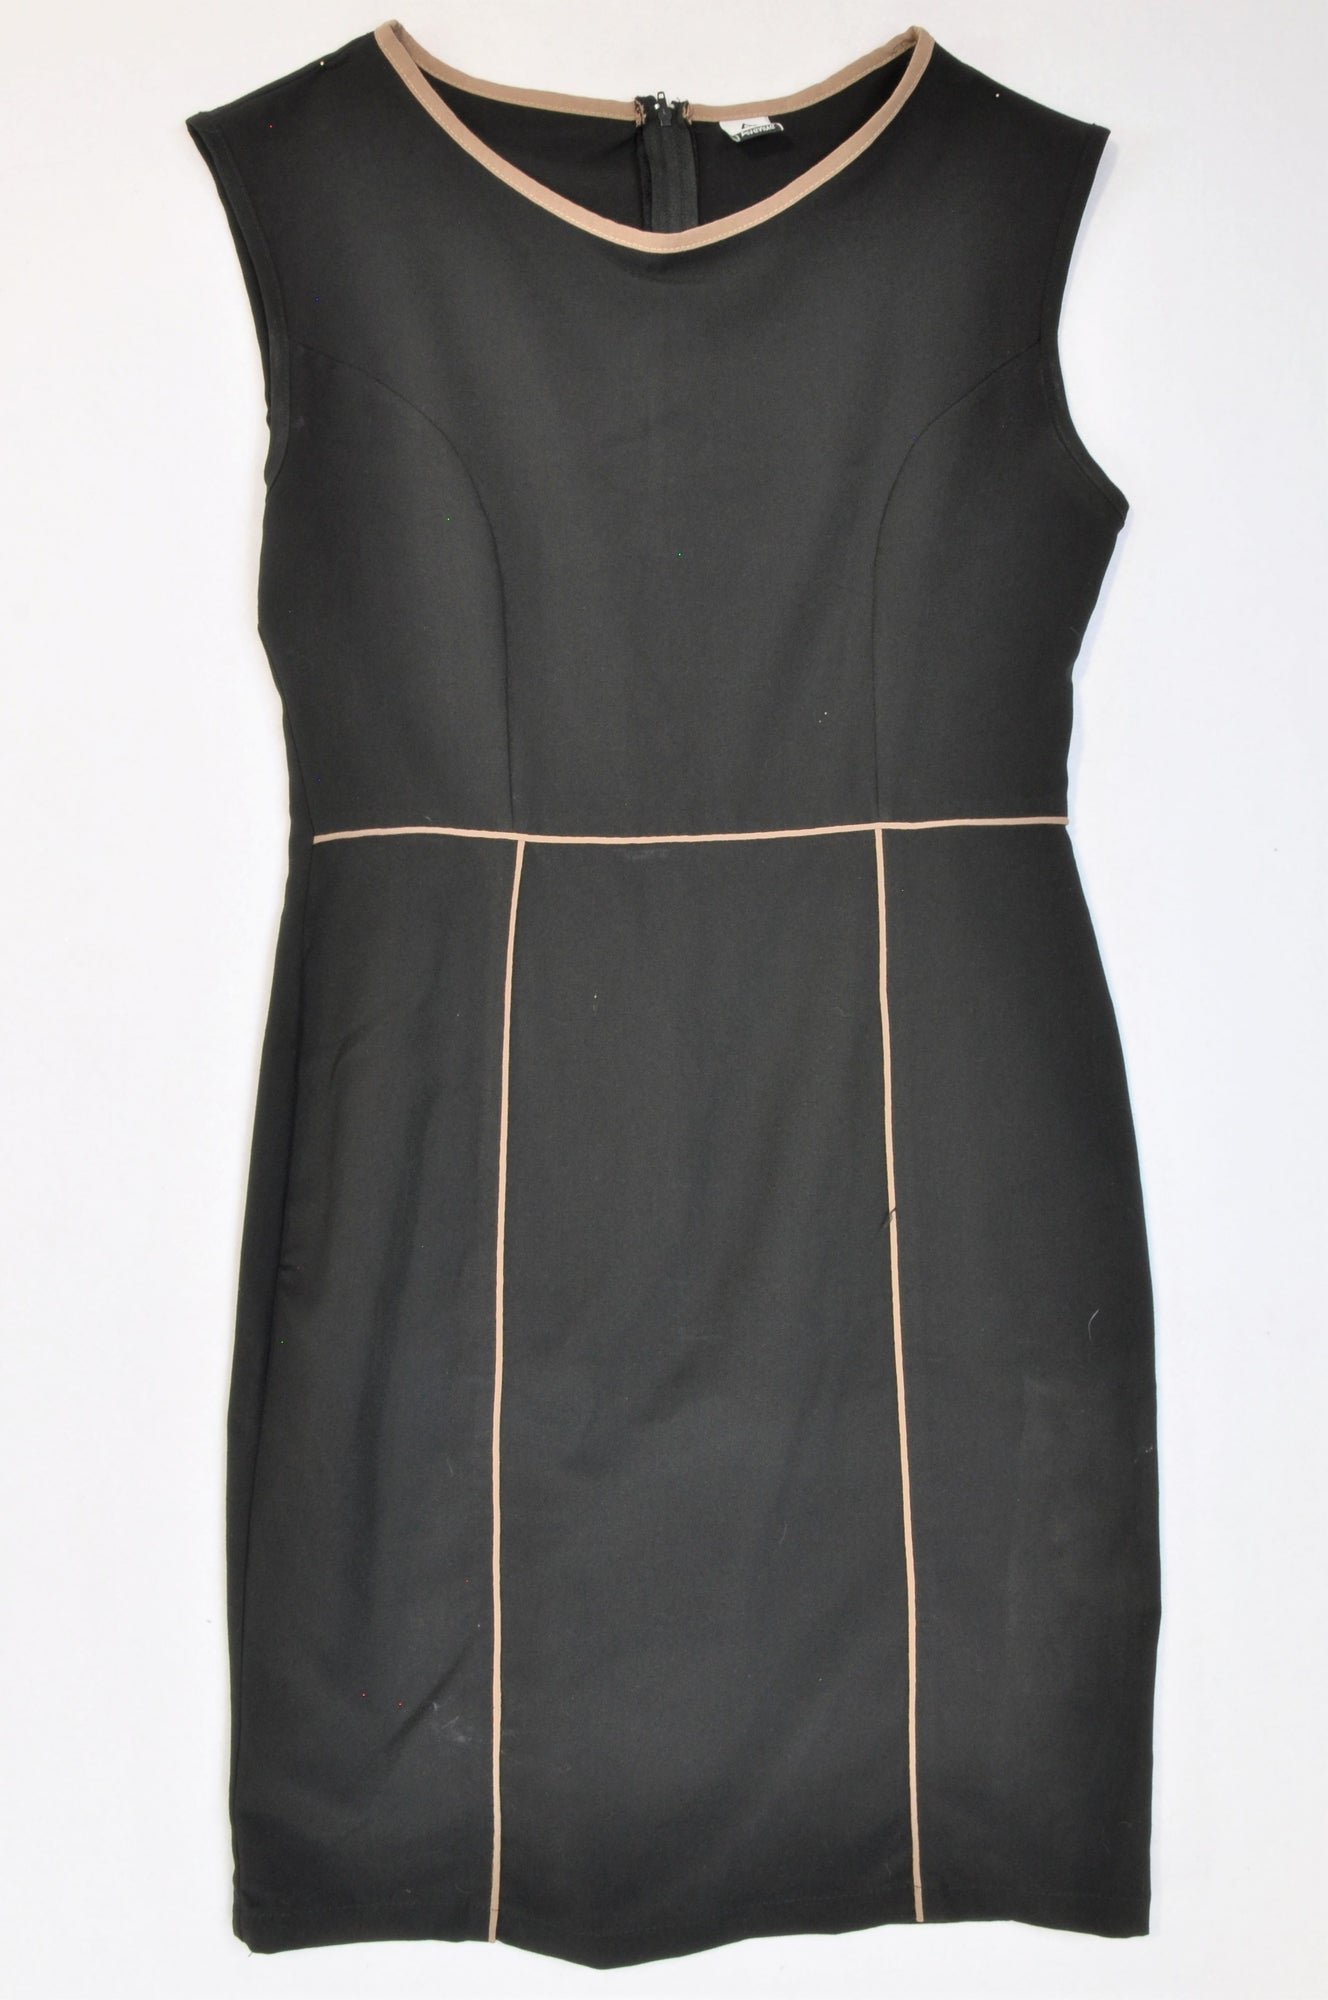 Avenue Black Brown Trim Office Dress Women Size 36